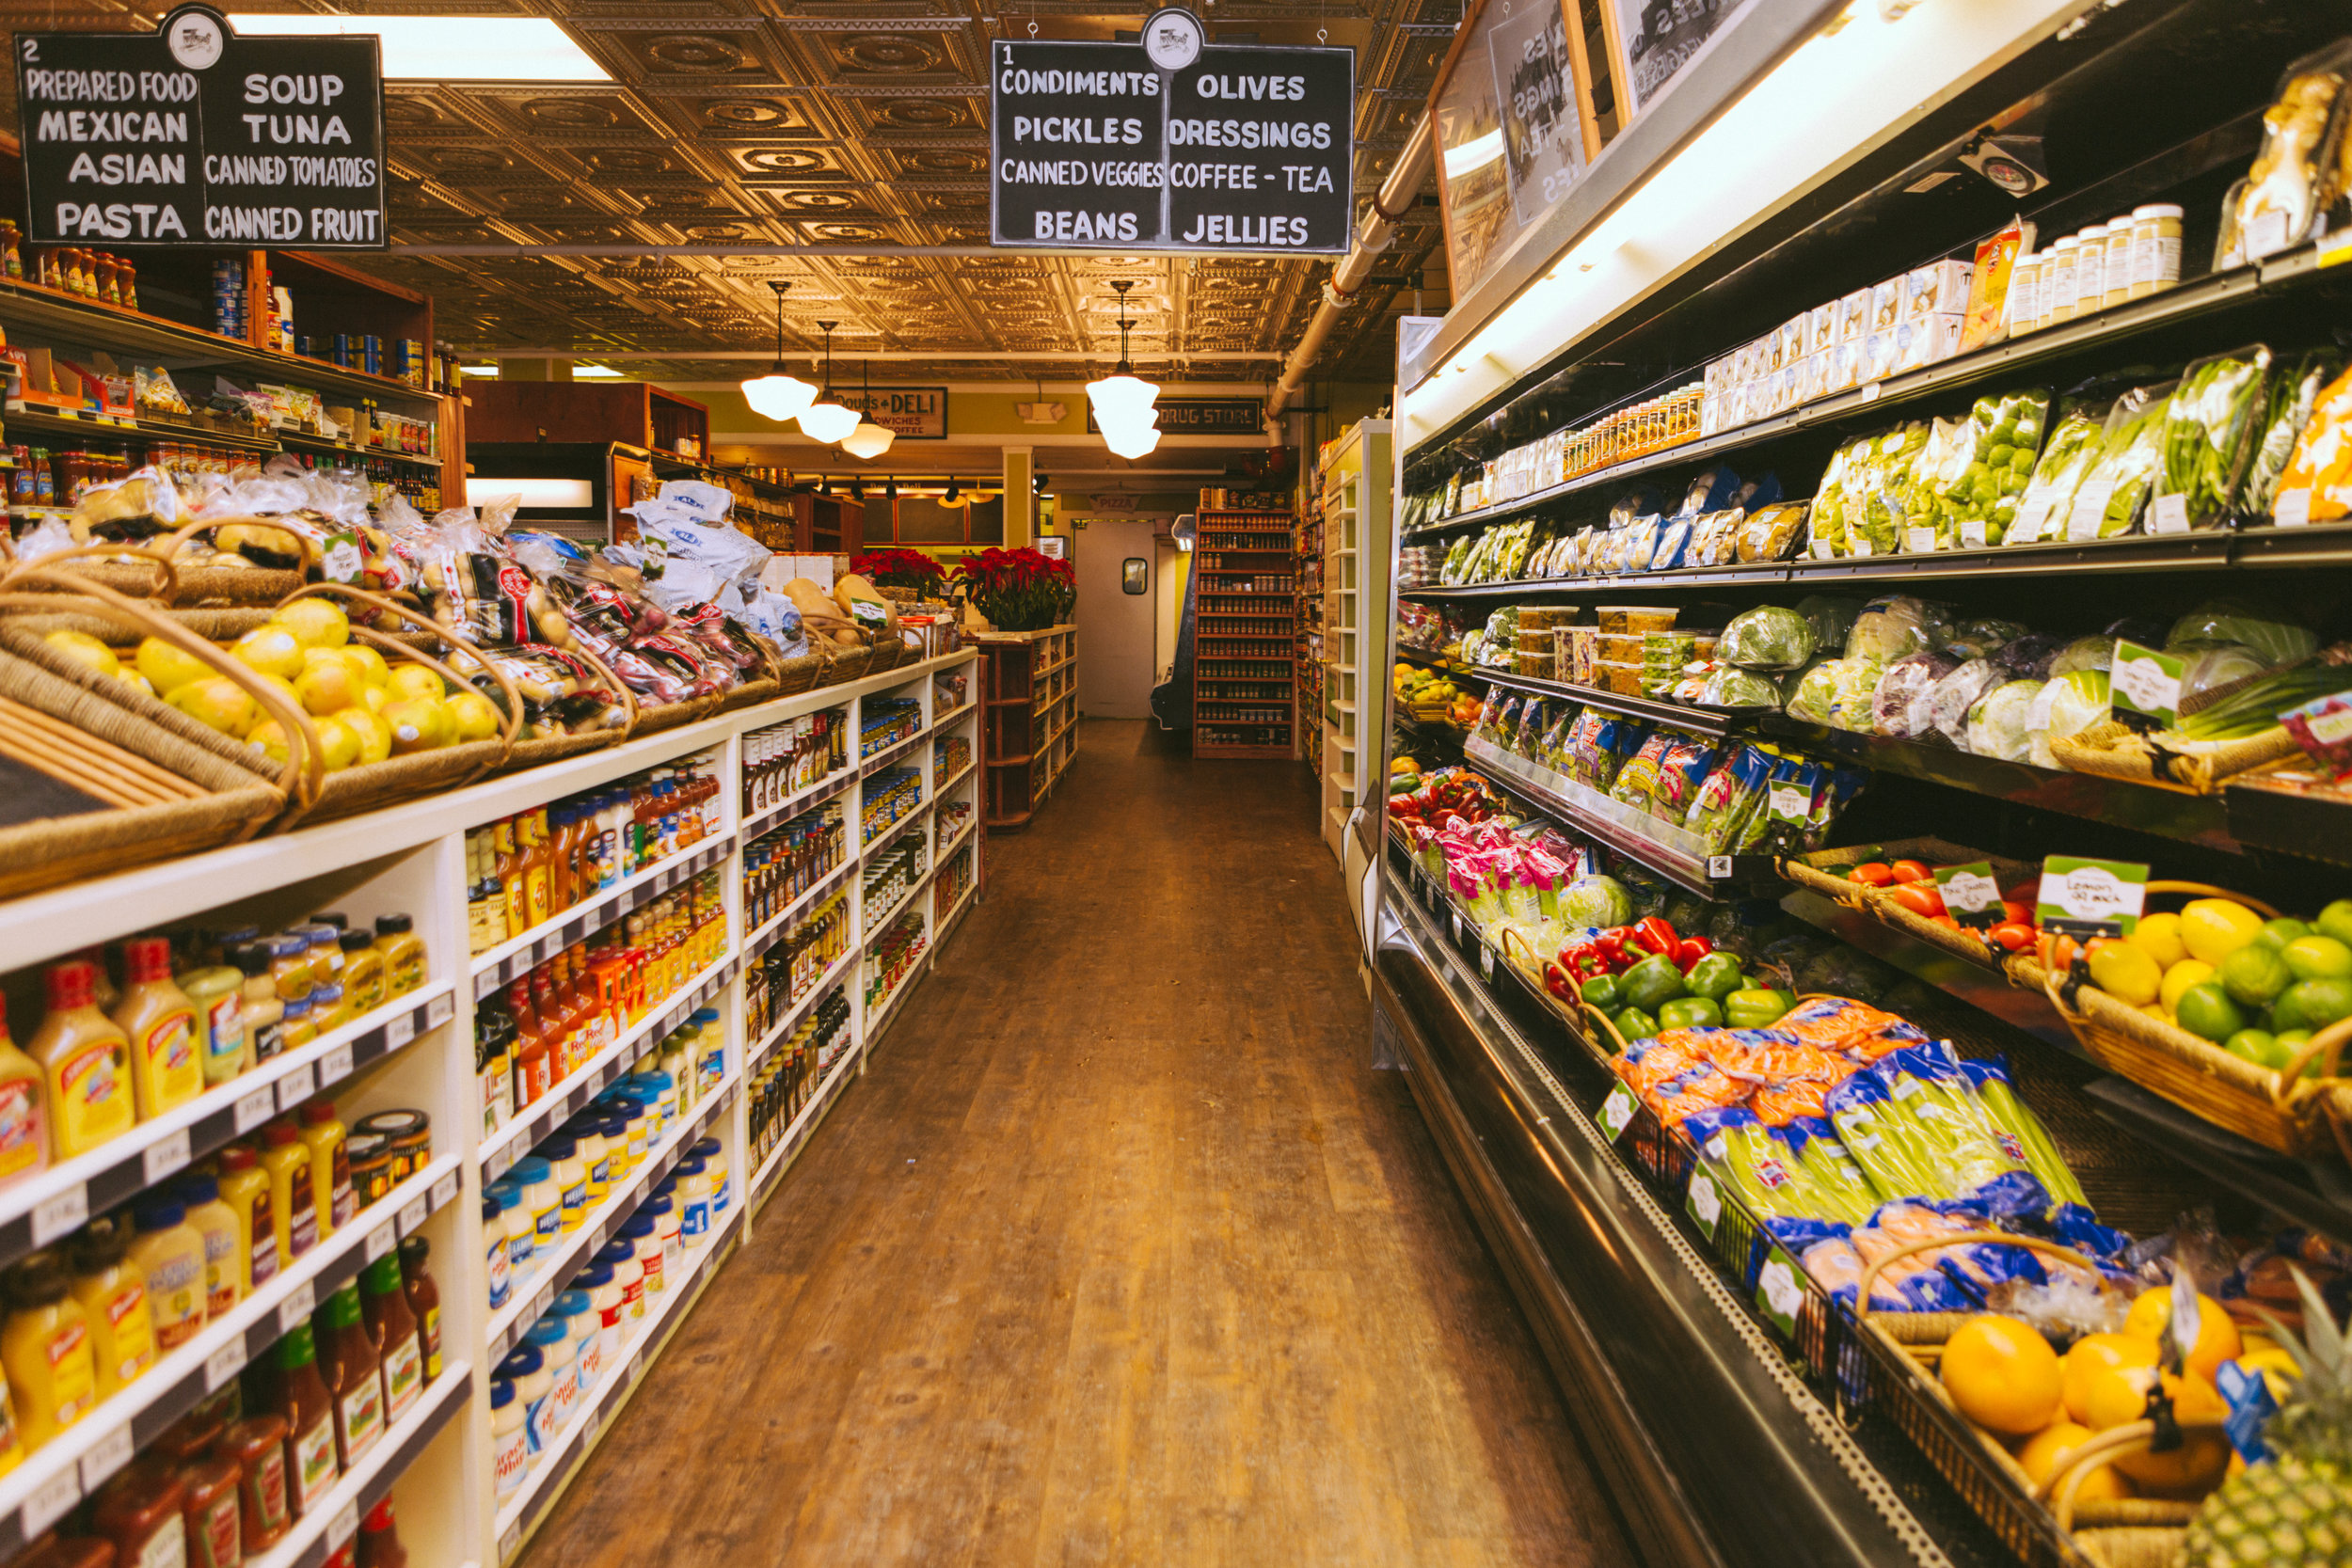 Grocery Store Mackinac Island, MI, Michigan, Food Delivery, Groceries, Small business, family business, family owned, fresh produce, fruit, vegetables,